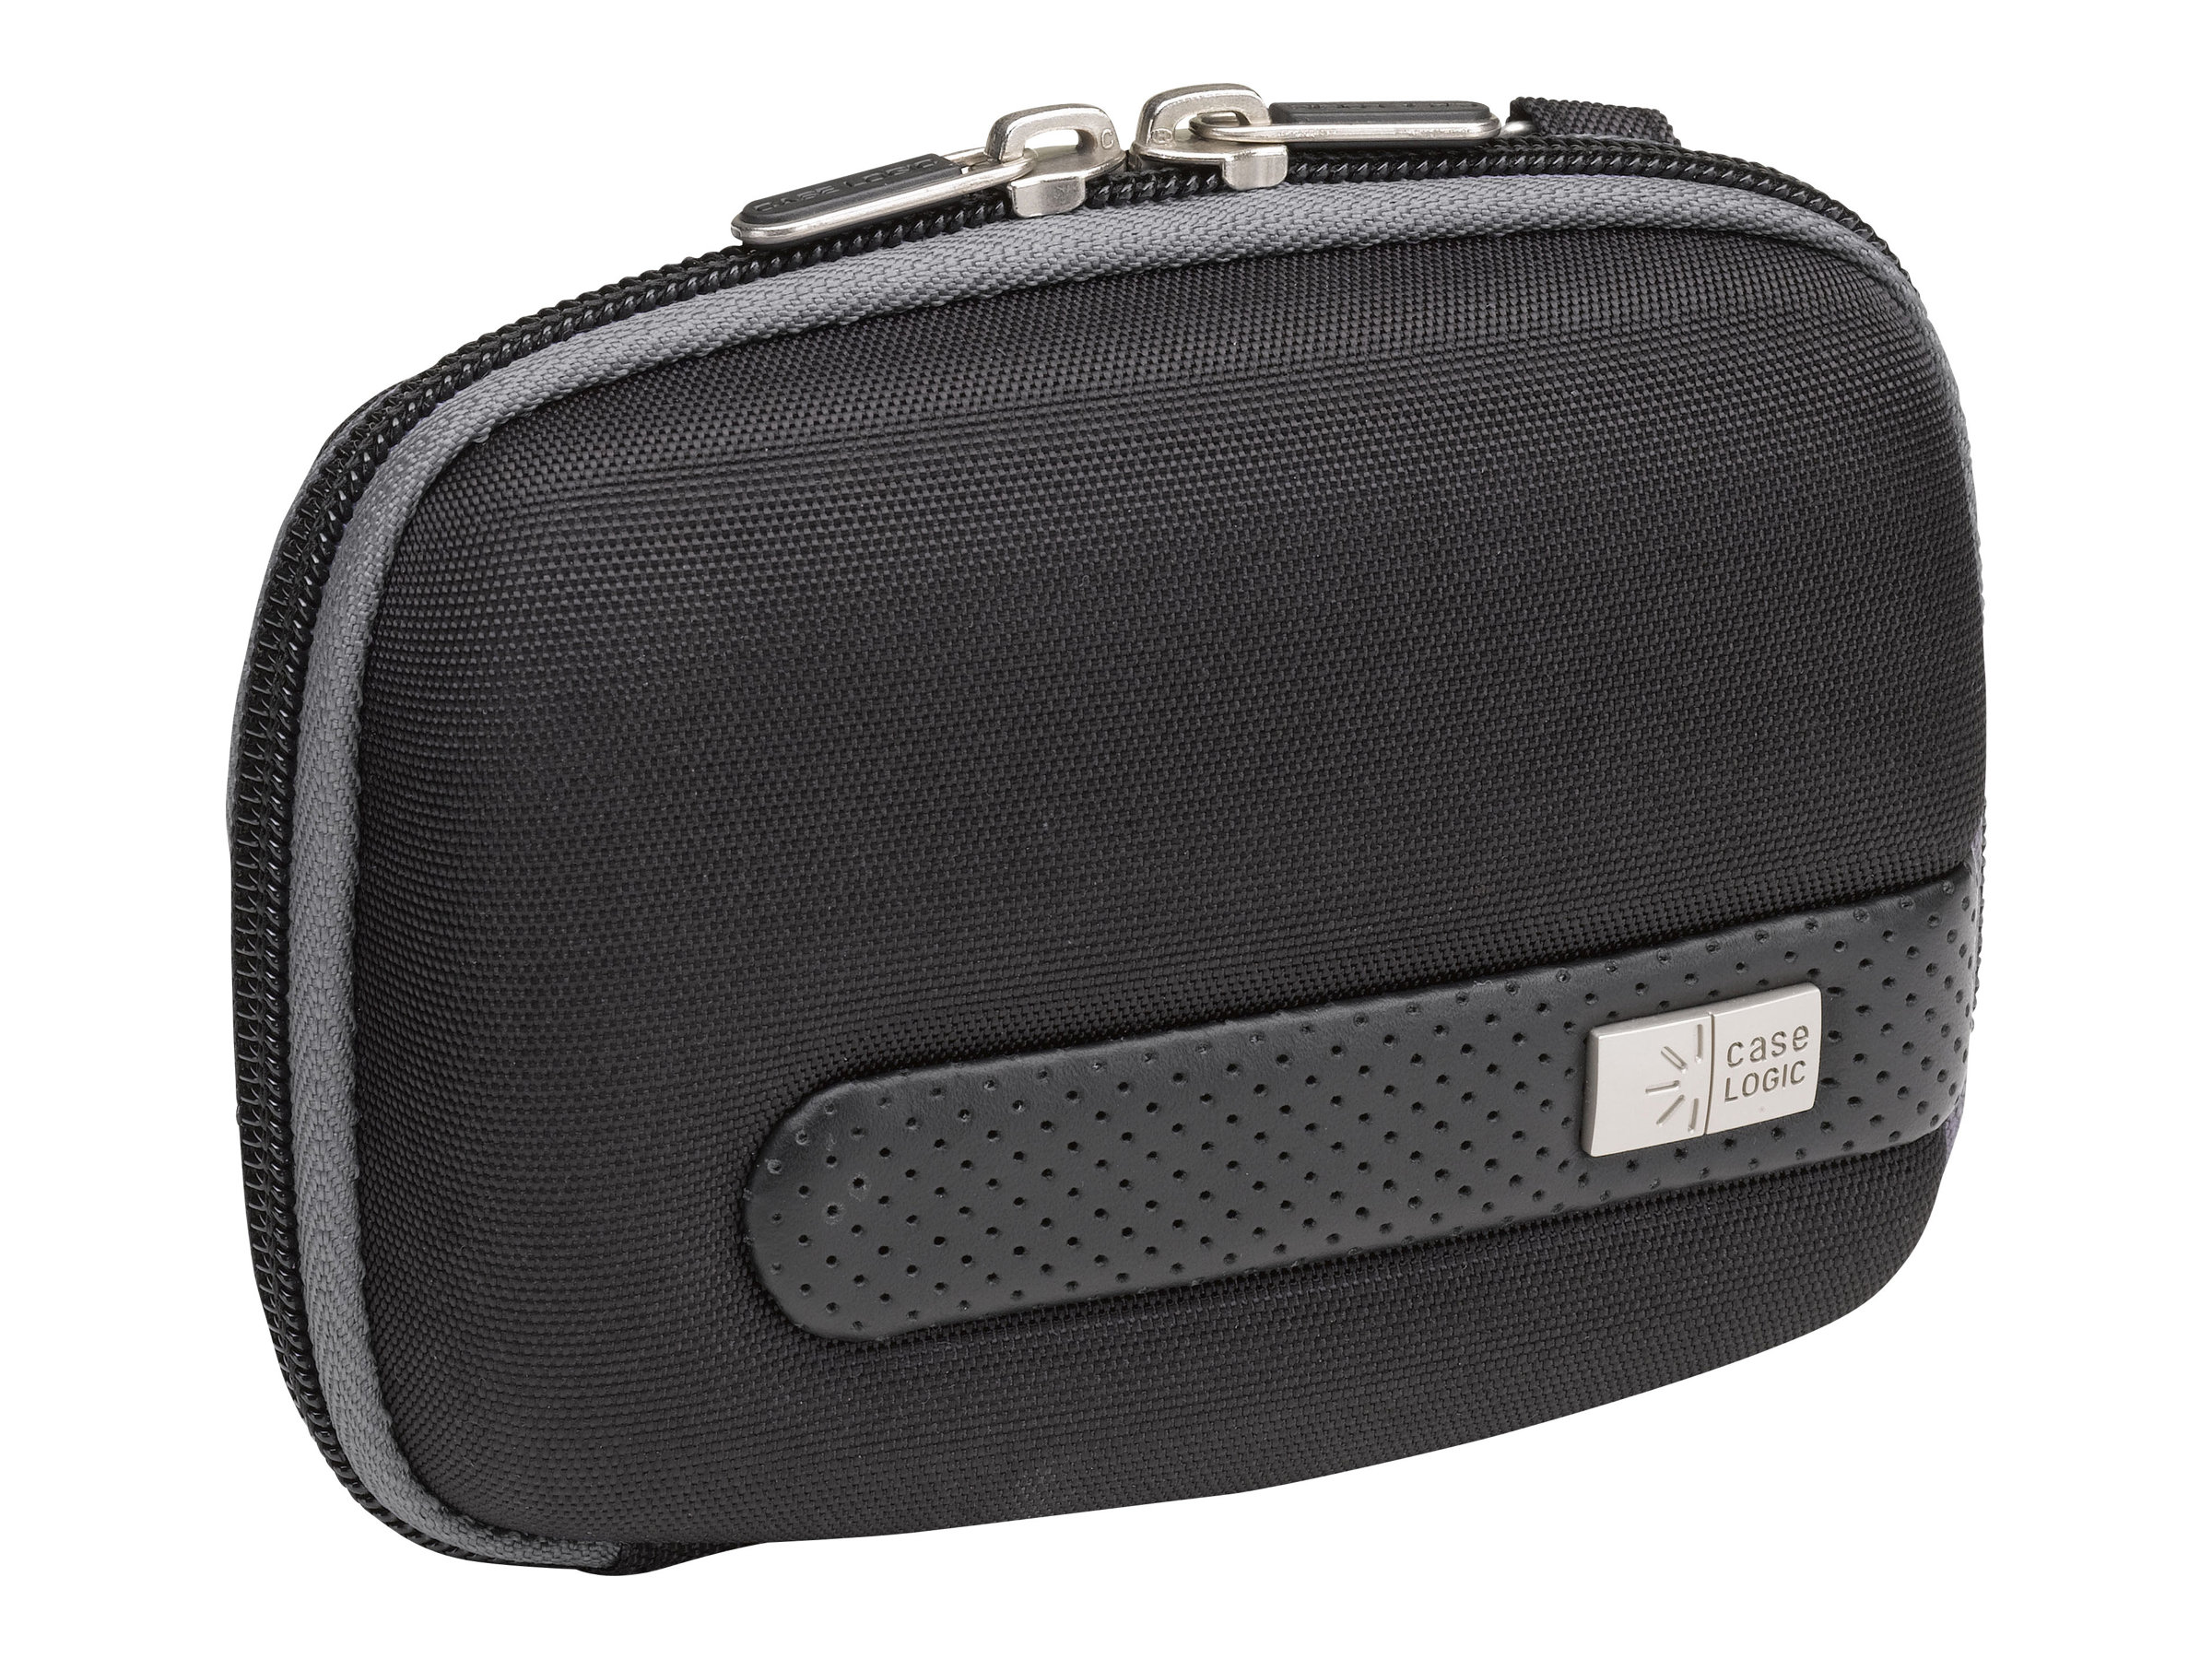 Case Logic 4.3 Flat Sccreen GPS Case, Black